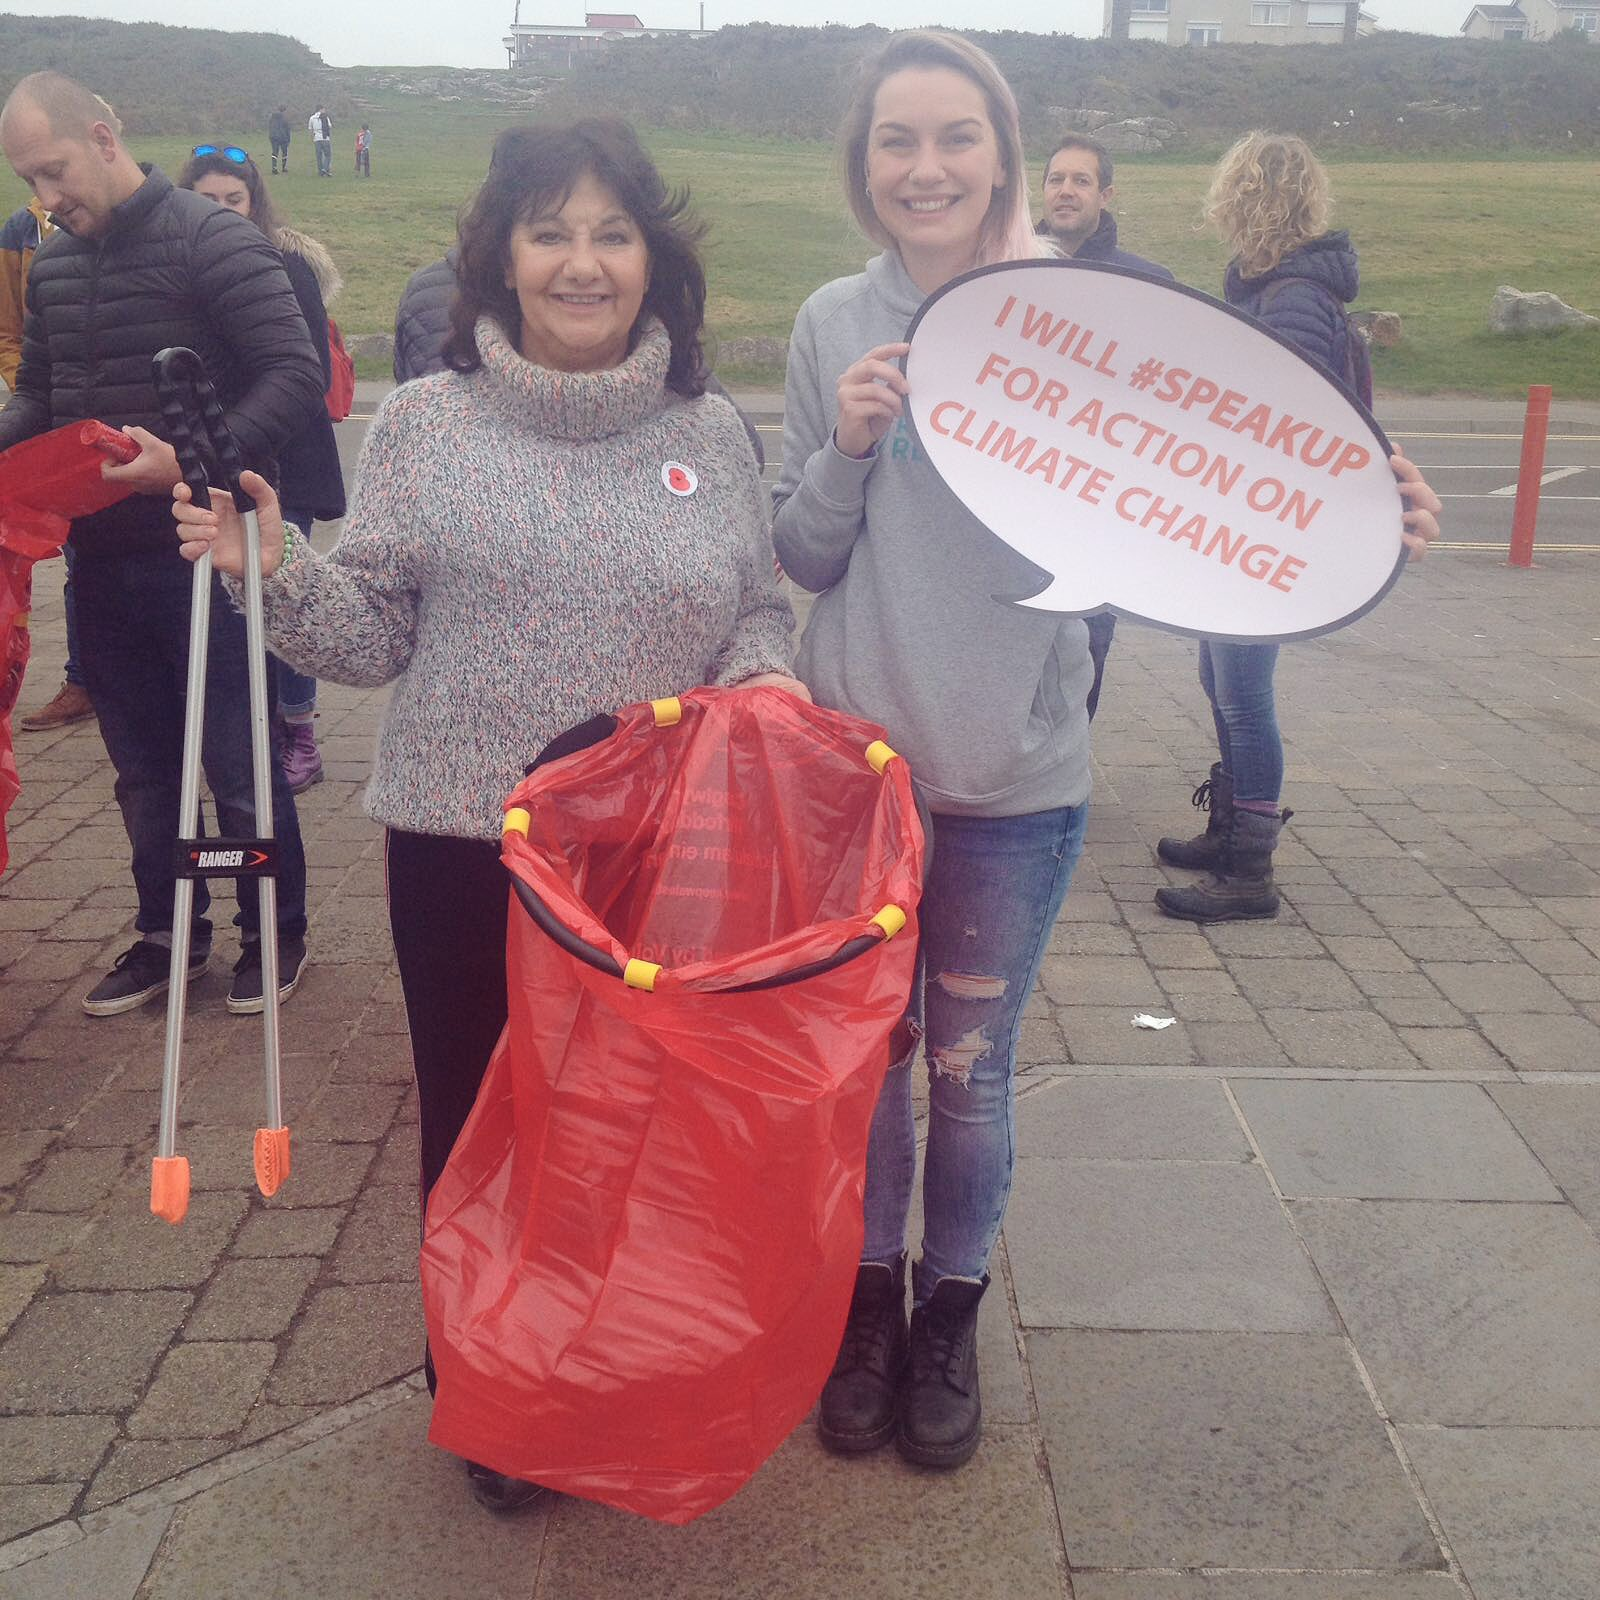 @SCCCymru Great beach clean meeting with @carolineUKIP at Porthcawl! Had a great turn out collecting more than 40 bags of litter! #codillais https://t.co/u61t3HW2ox